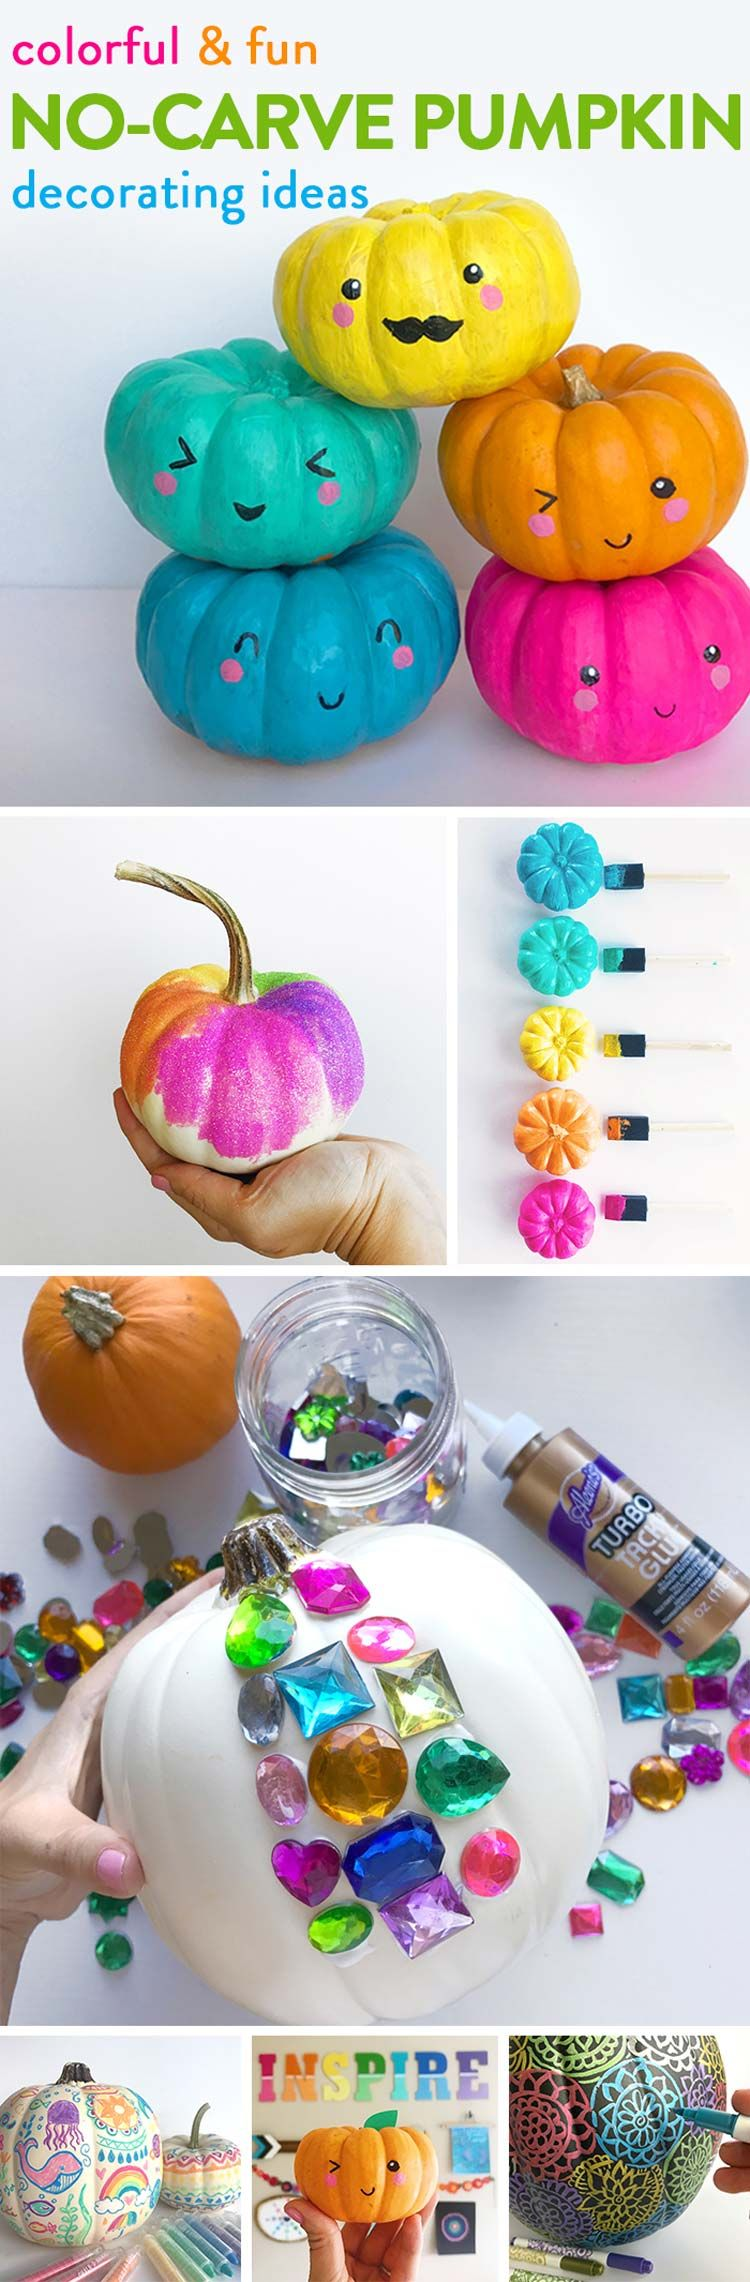 No-Carve Pumpkin Decorating Ideas | OOLY